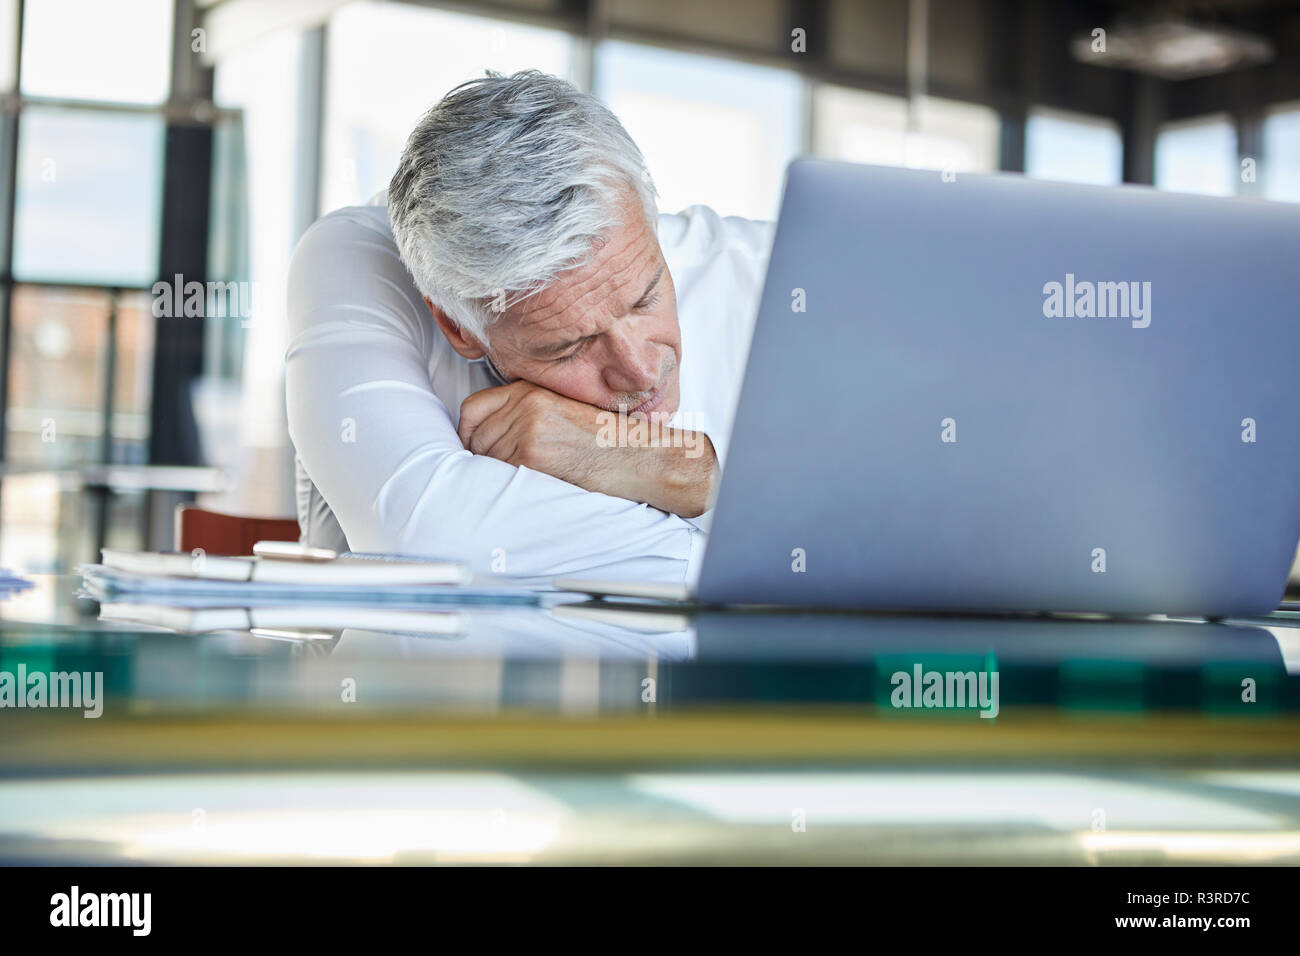 Exhausted businessman sleeping in front of laptop Stock Photo